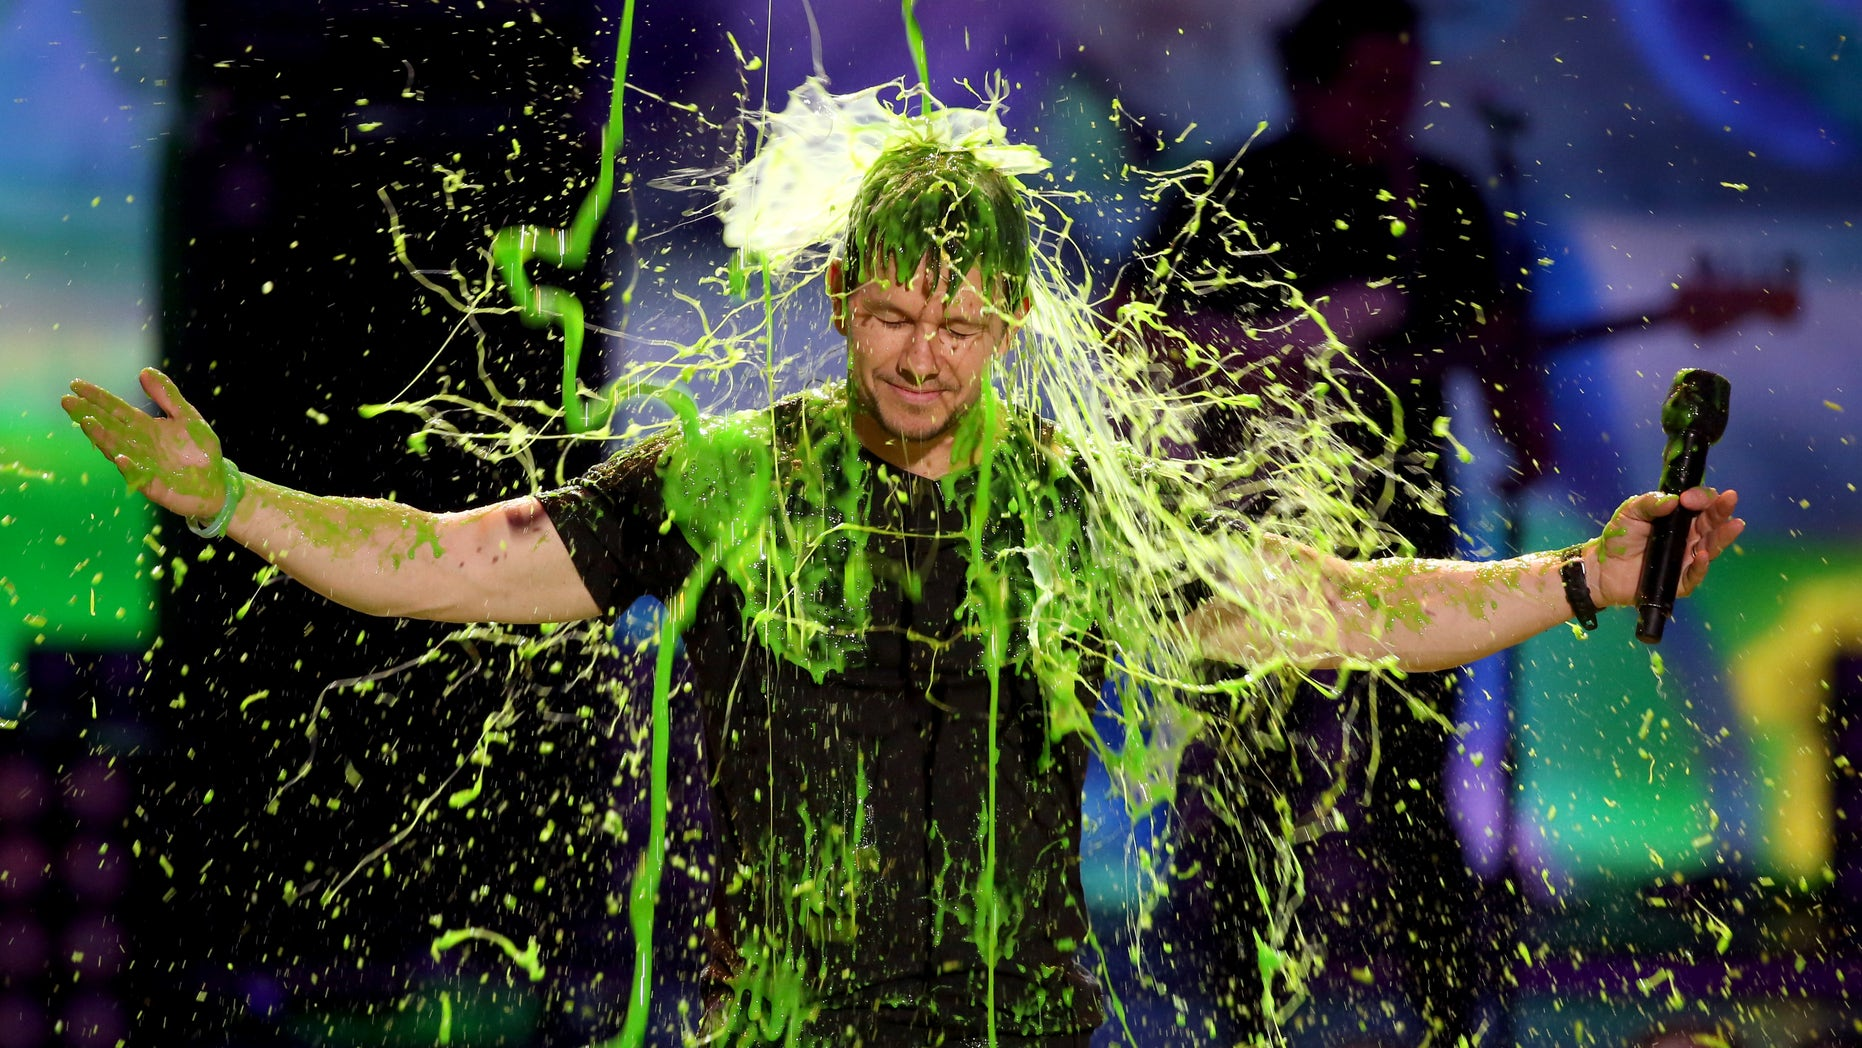 March 29, 2014. Mark Wahlberg gets slimed at the 27th annual Kids' Choice Awards at the Galen Center in Los Angeles.